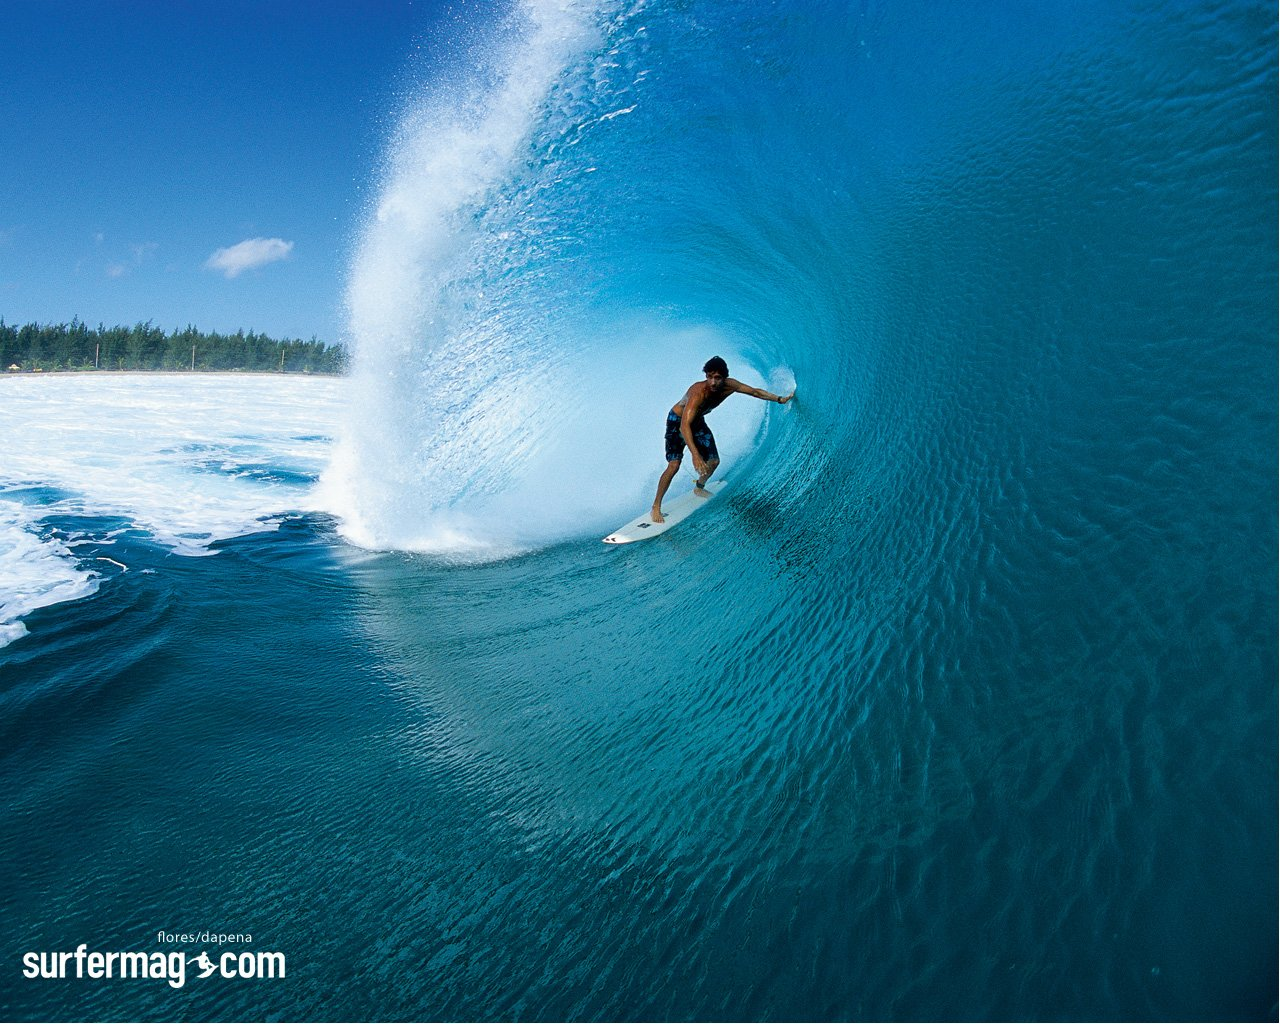 surfer mag surfing iphone wallpaper surfing pictures surfing 1280x1024